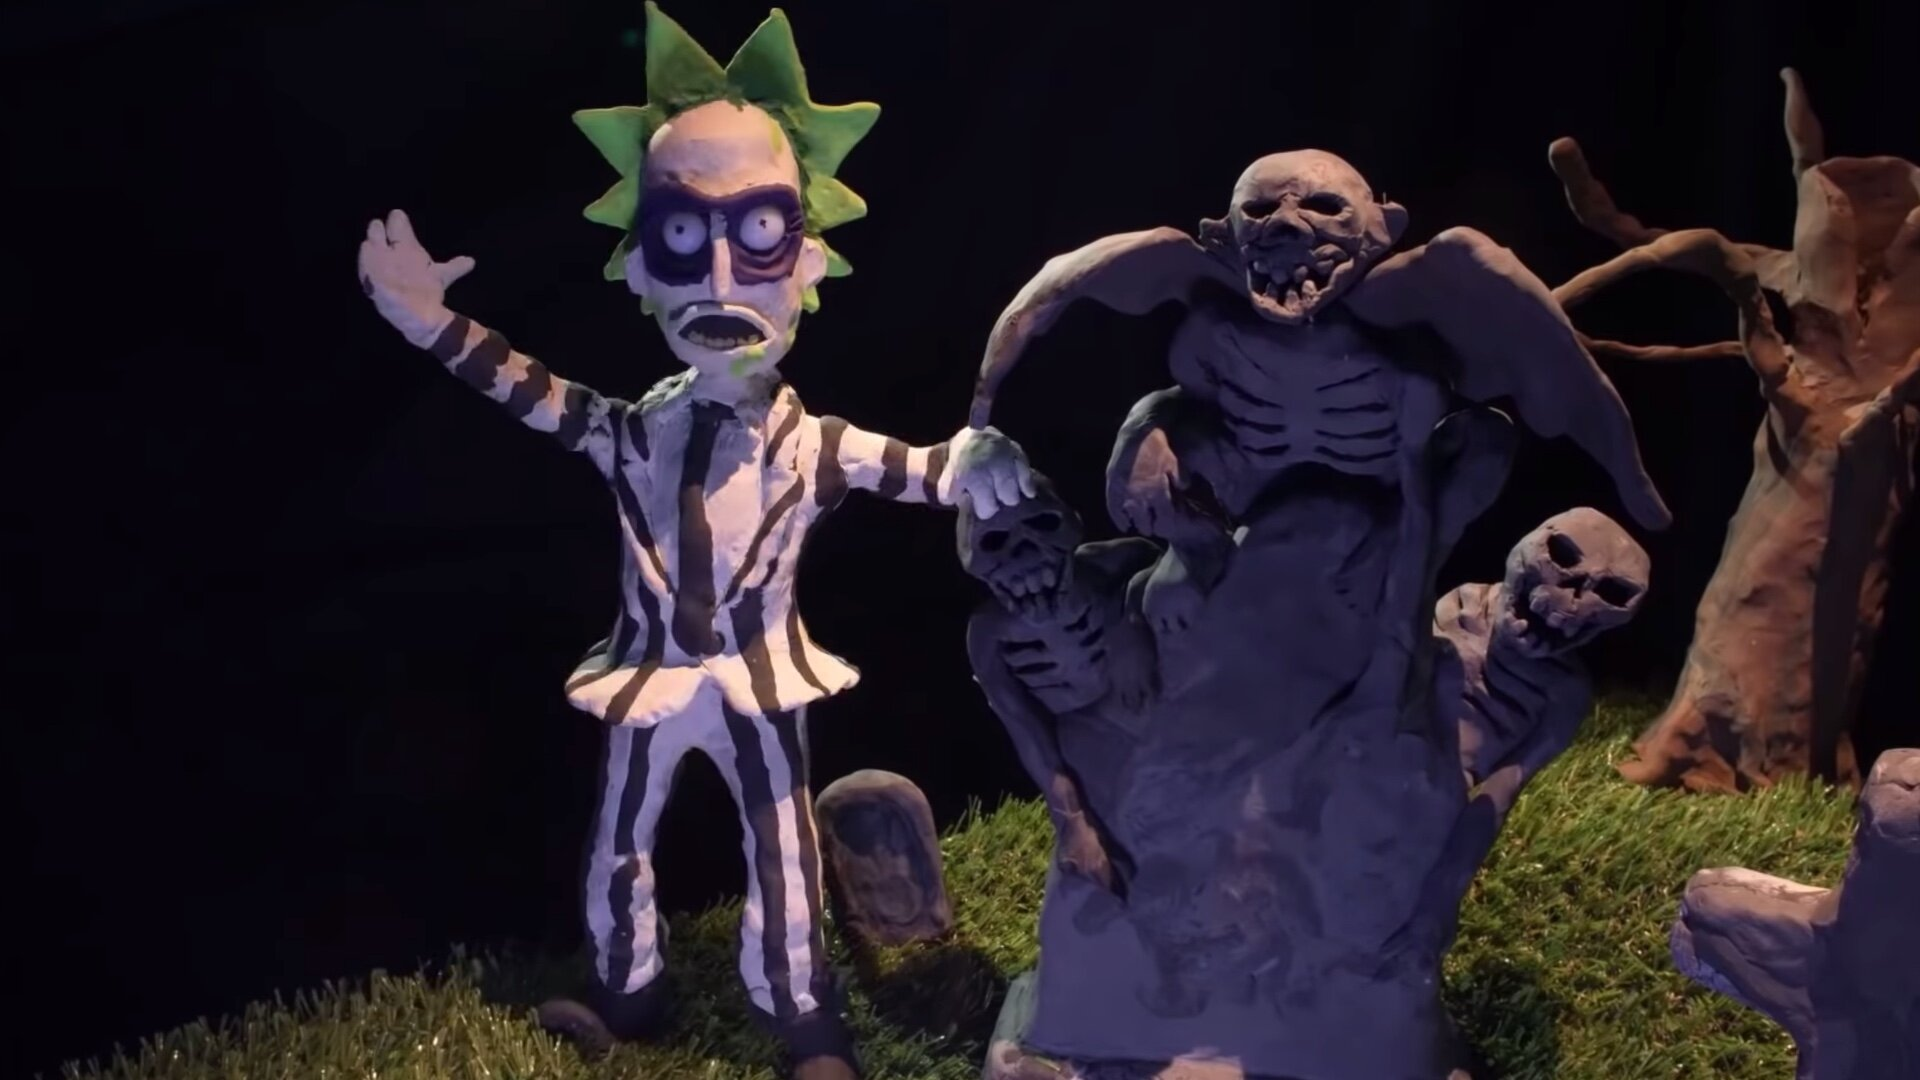 Halloween 2020 Non Canonical Adult Swim Shares Funny RICK AND MORTY: THE NON CANONICAL